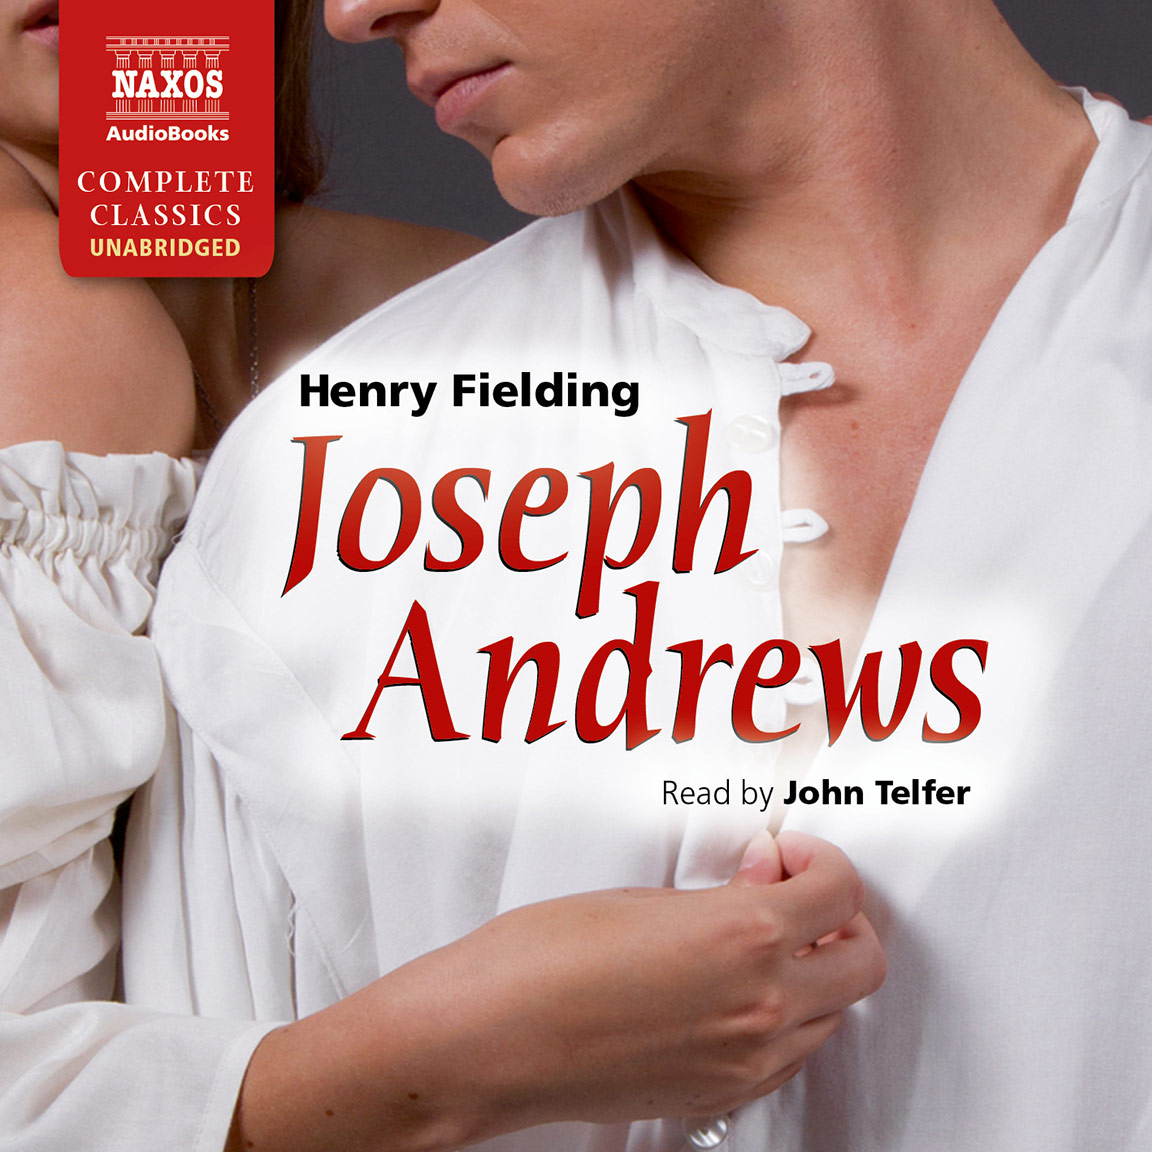 Joseph Andrews (unabridged)